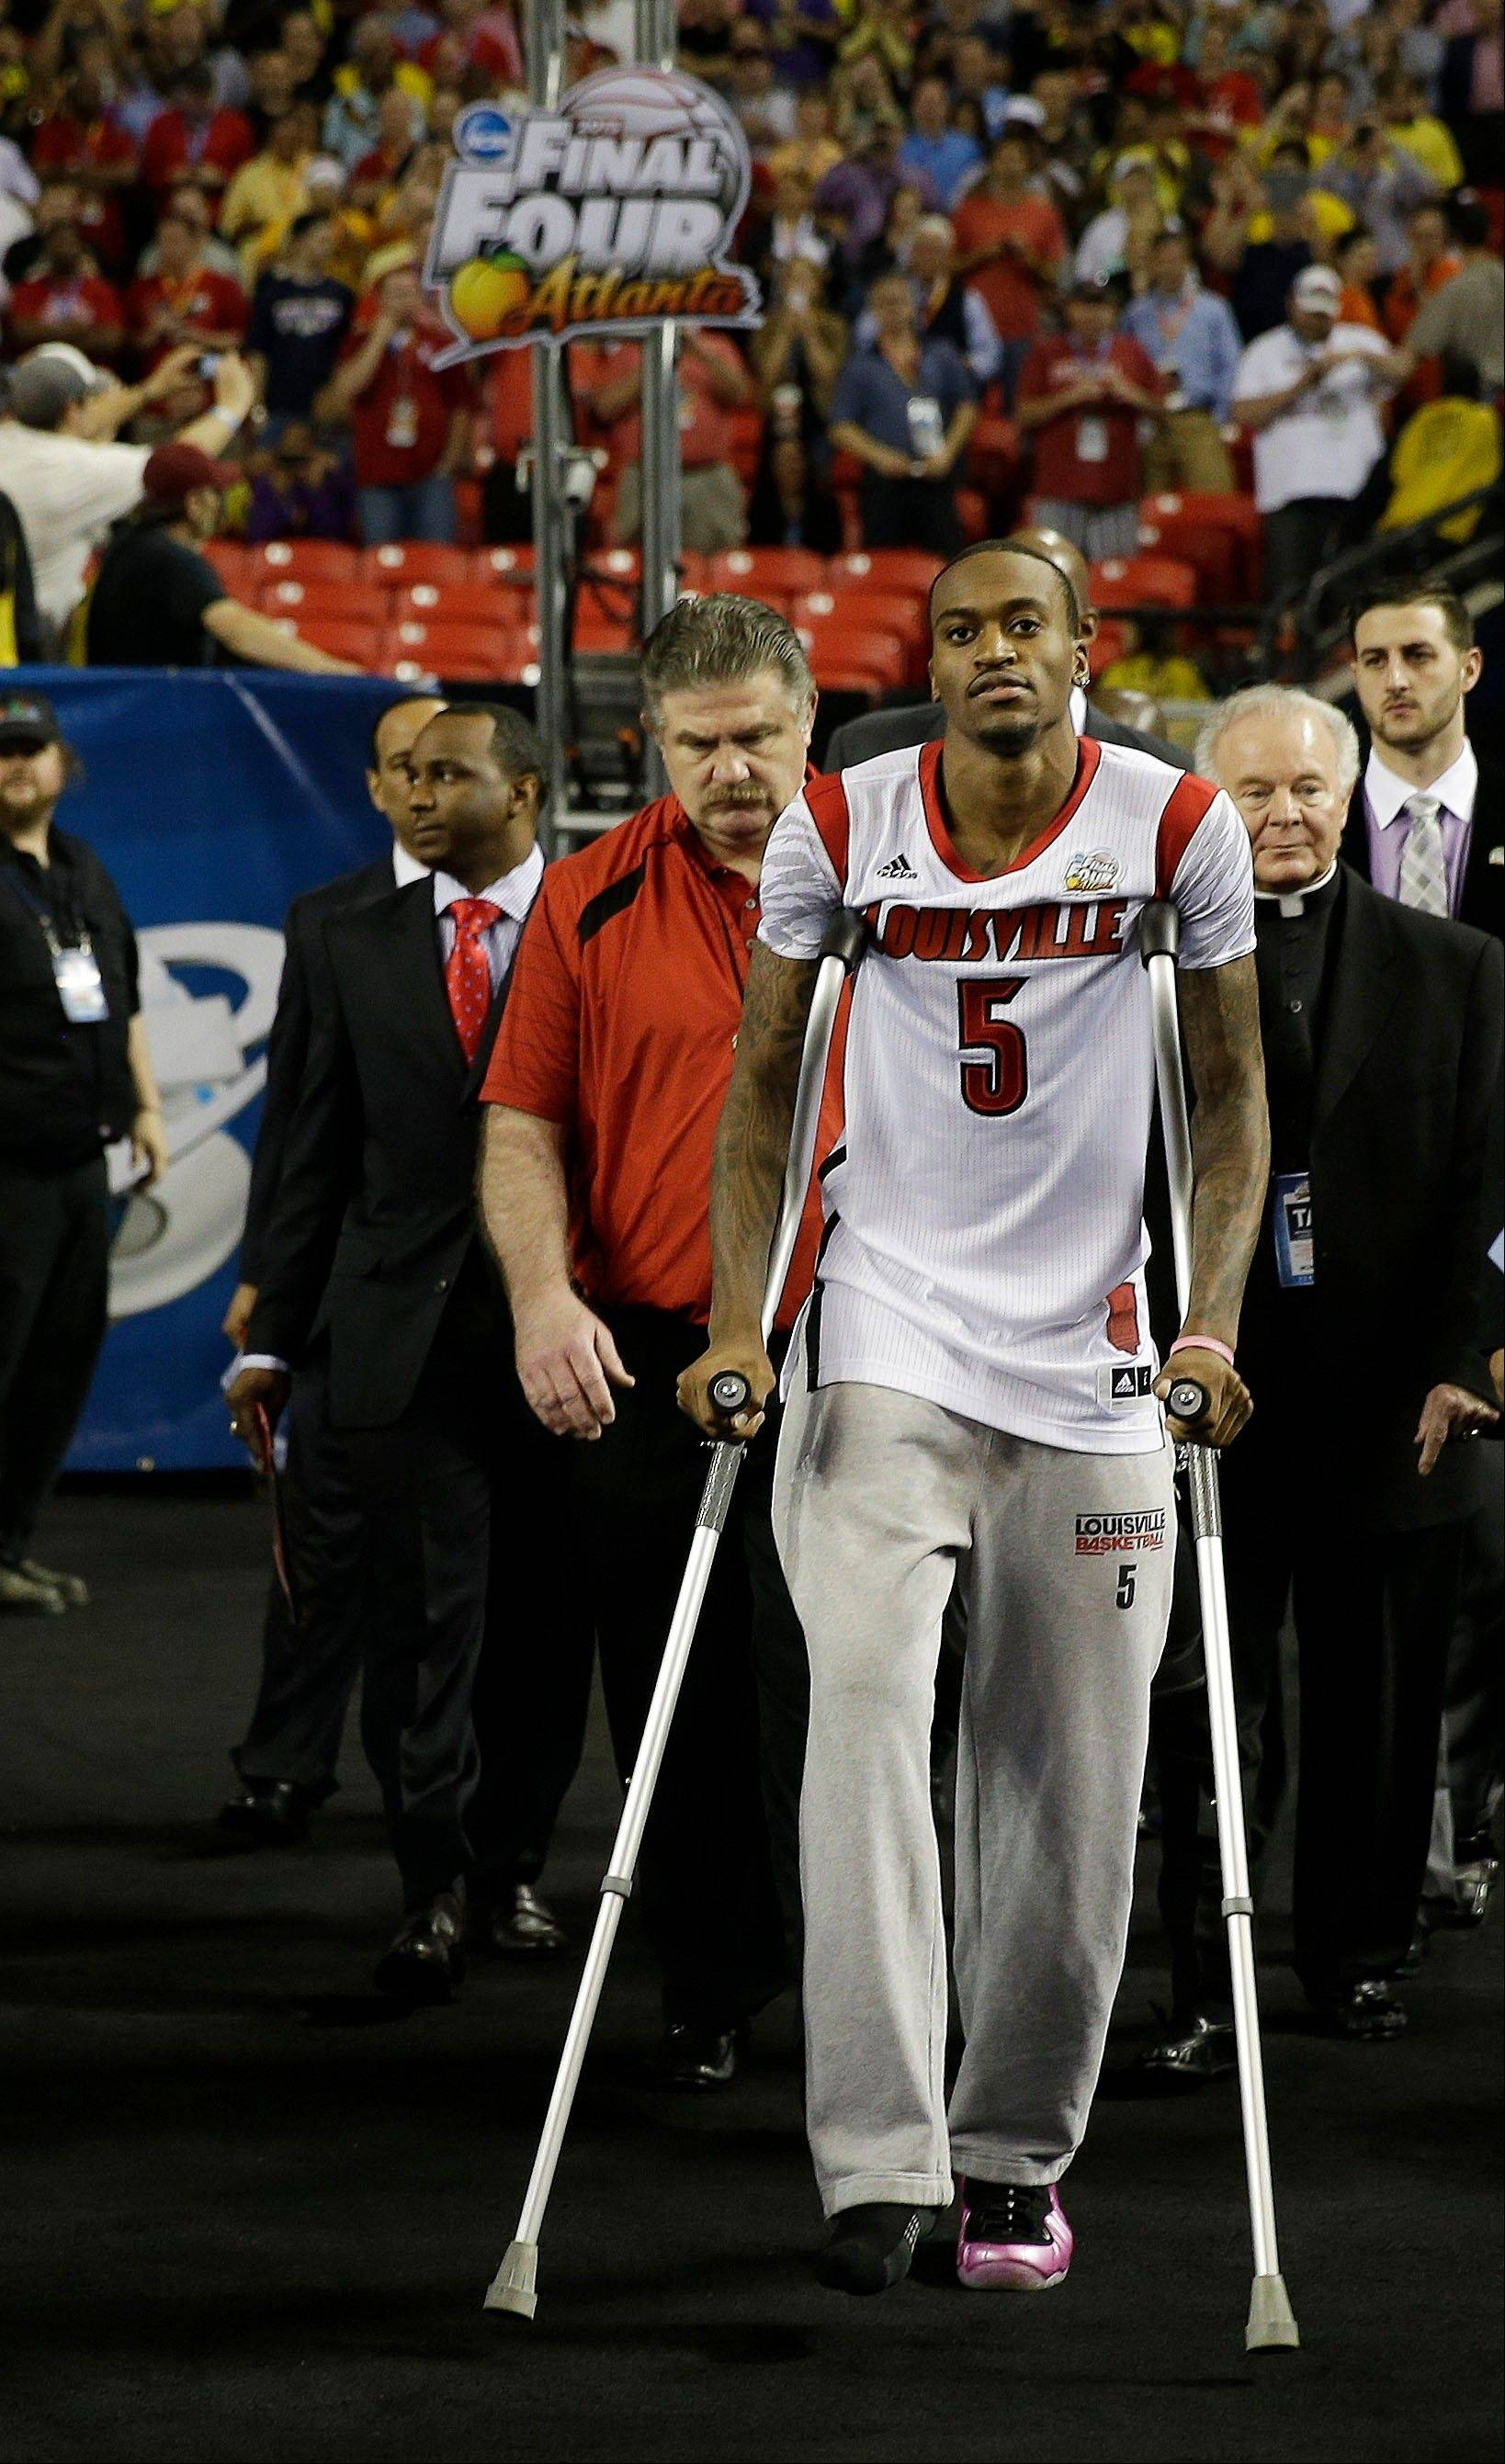 Louisville guard Kevin Ware walks out to the court before the first half of the NCAA Final Four tournament college basketball championship game against the Michigan, Monday, April 8, 2013, in Atlanta.